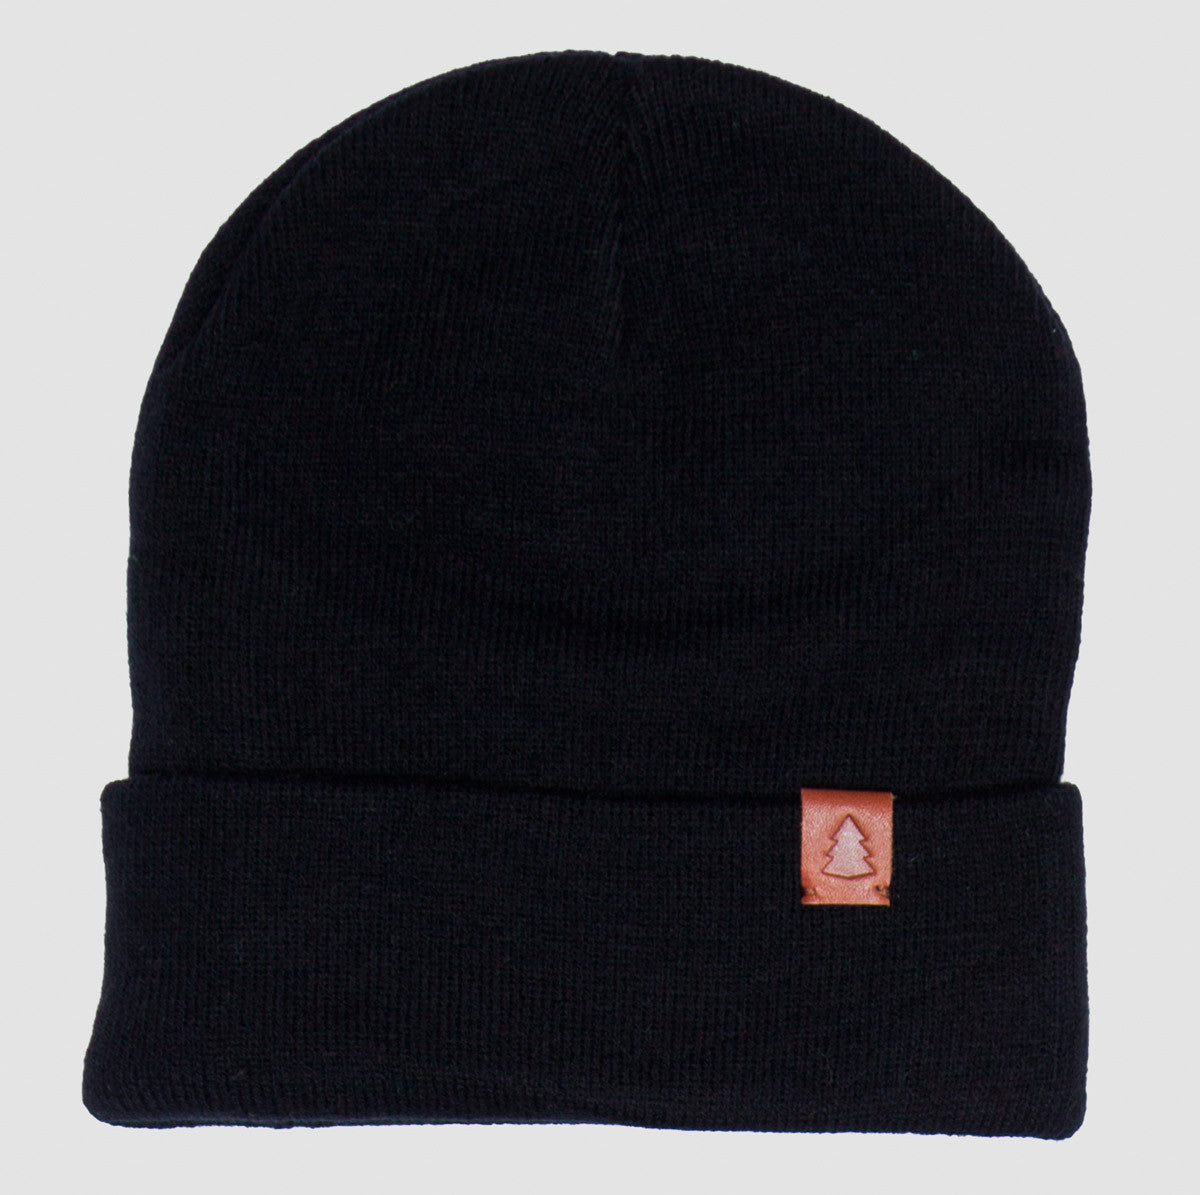 FOLDER BEANIE LEATHER LOGO